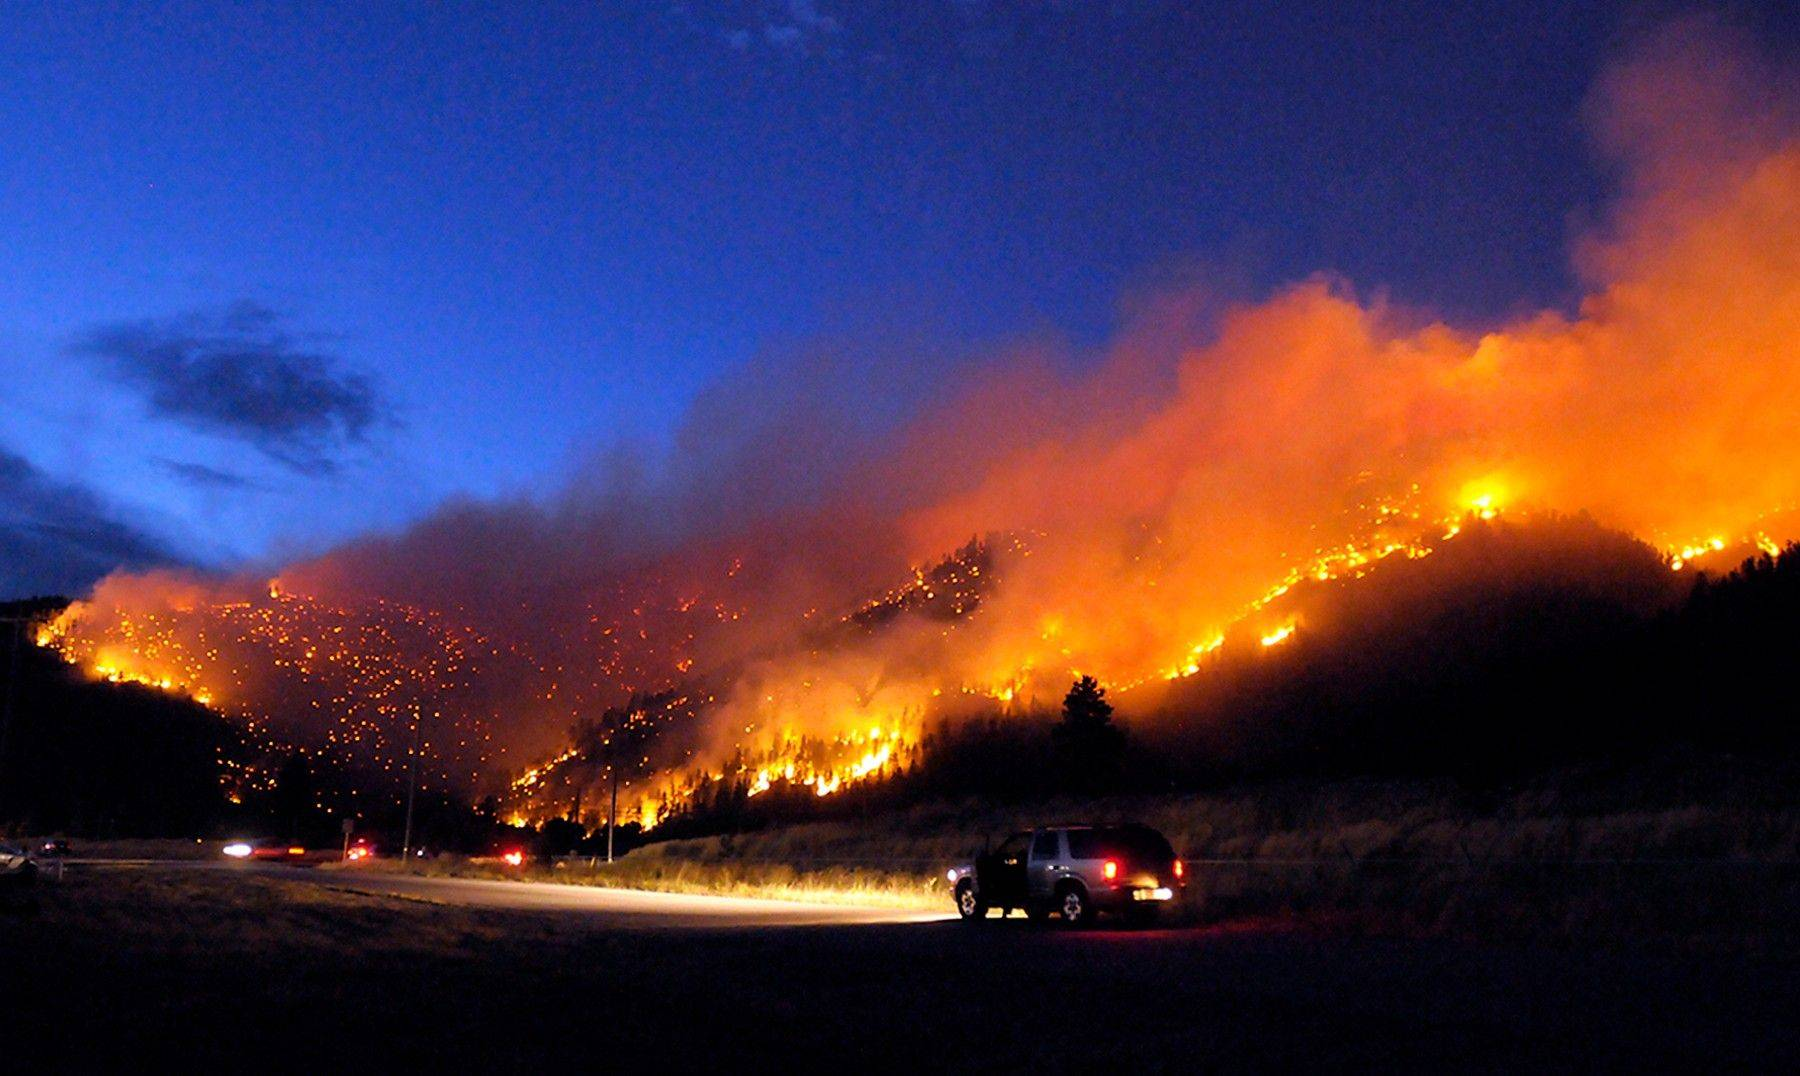 Flames light up the evening sky near Missoula, Mont., as a wildfire burns through timber. The fire spread quickly up the mountainside, and there were no reports of structures damaged or injuries.